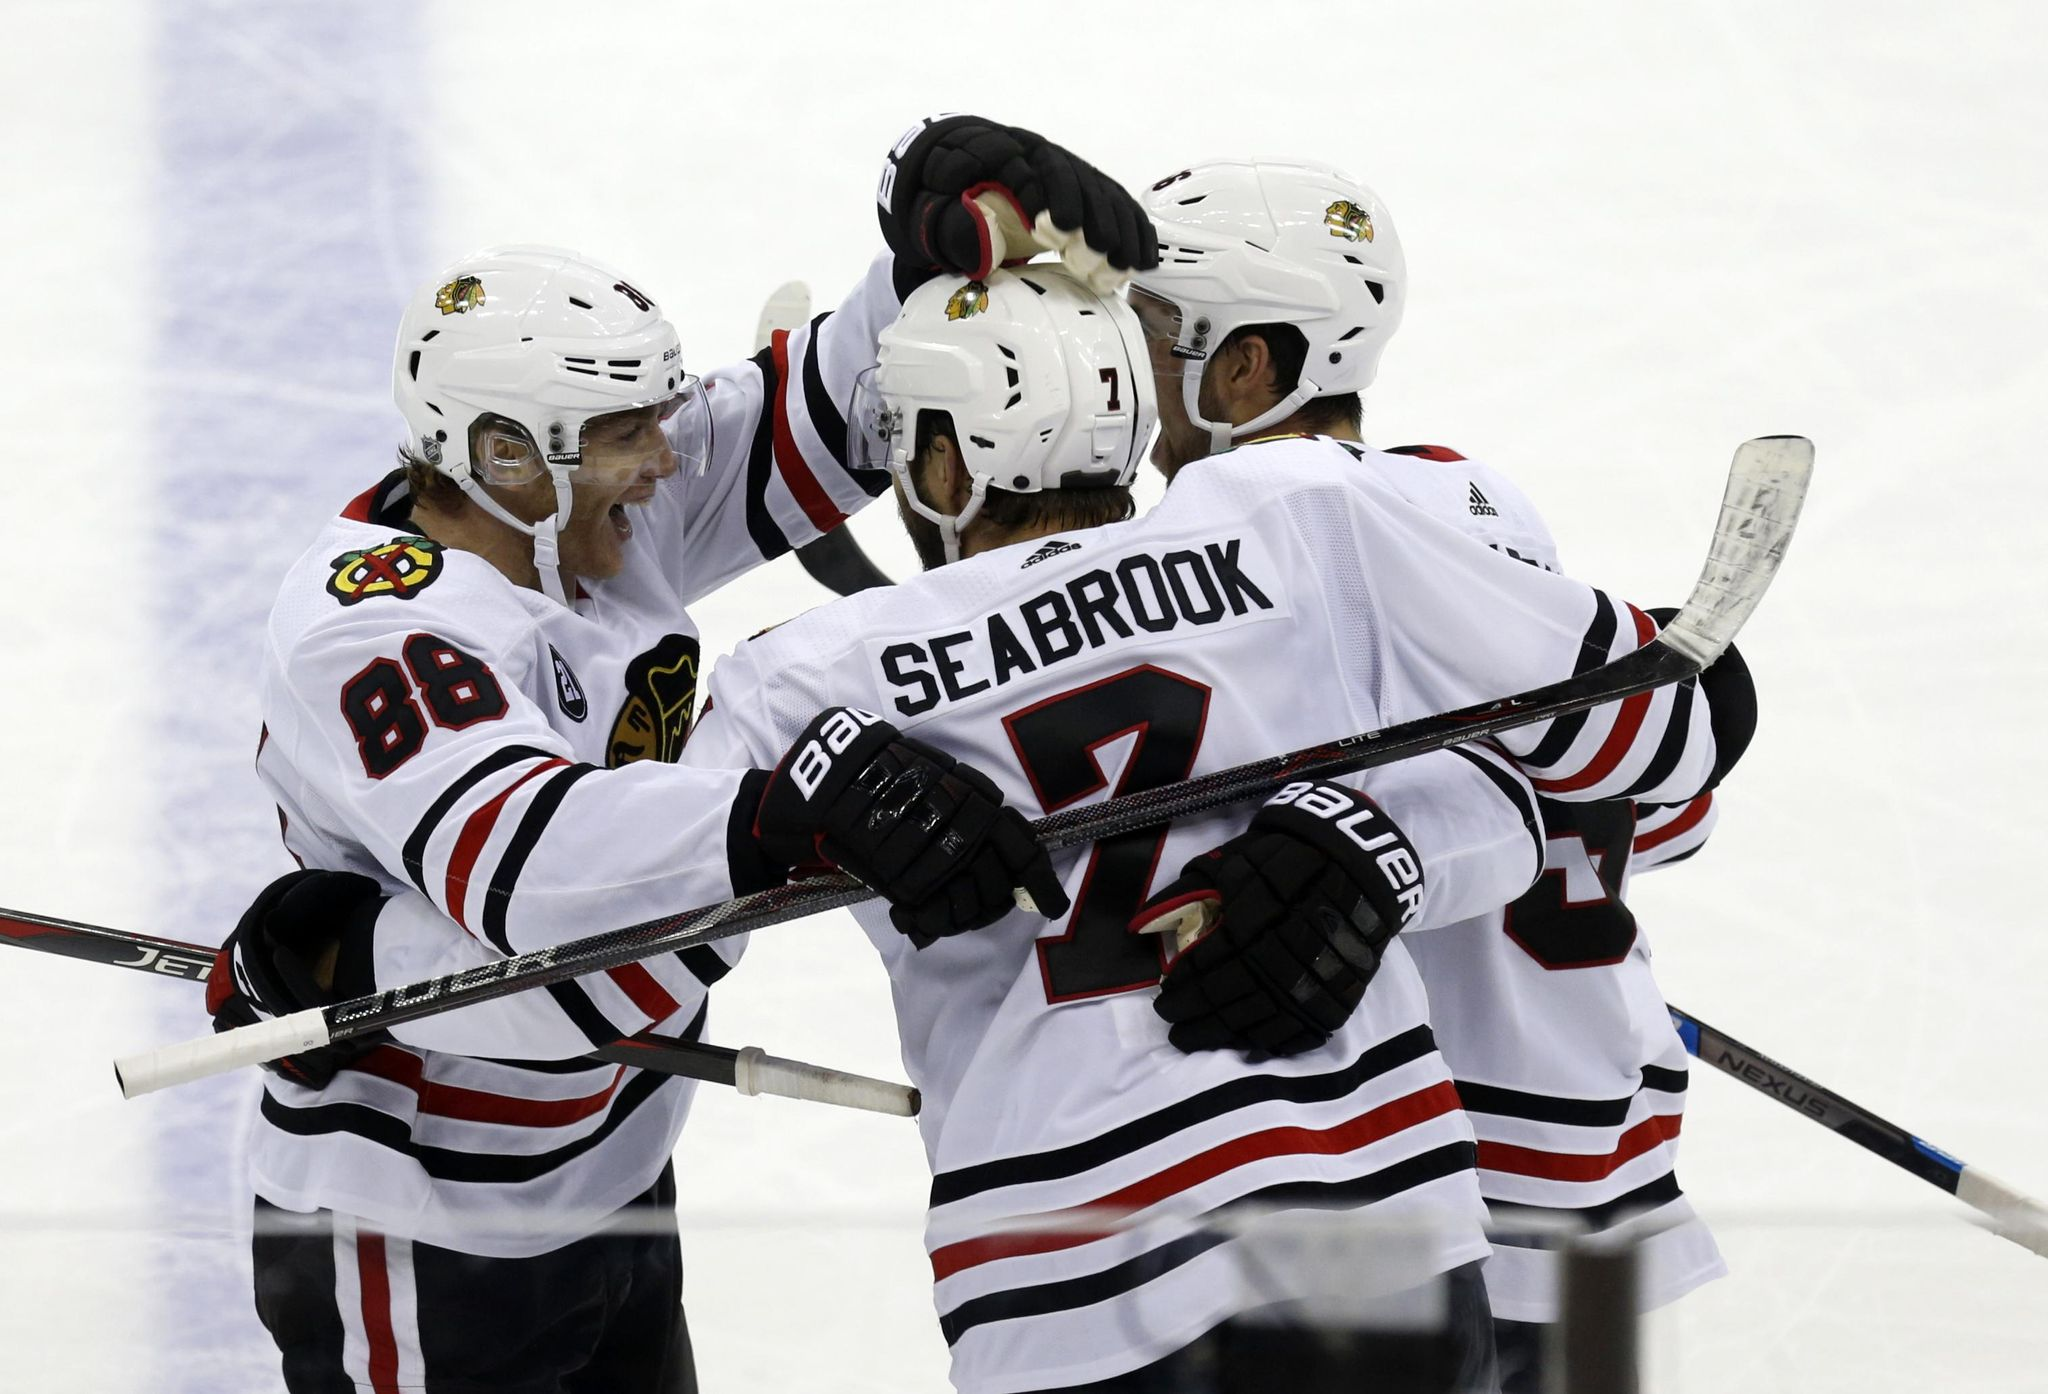 Blackhawks_blue_jackets_hockey_58125_s2048x1394